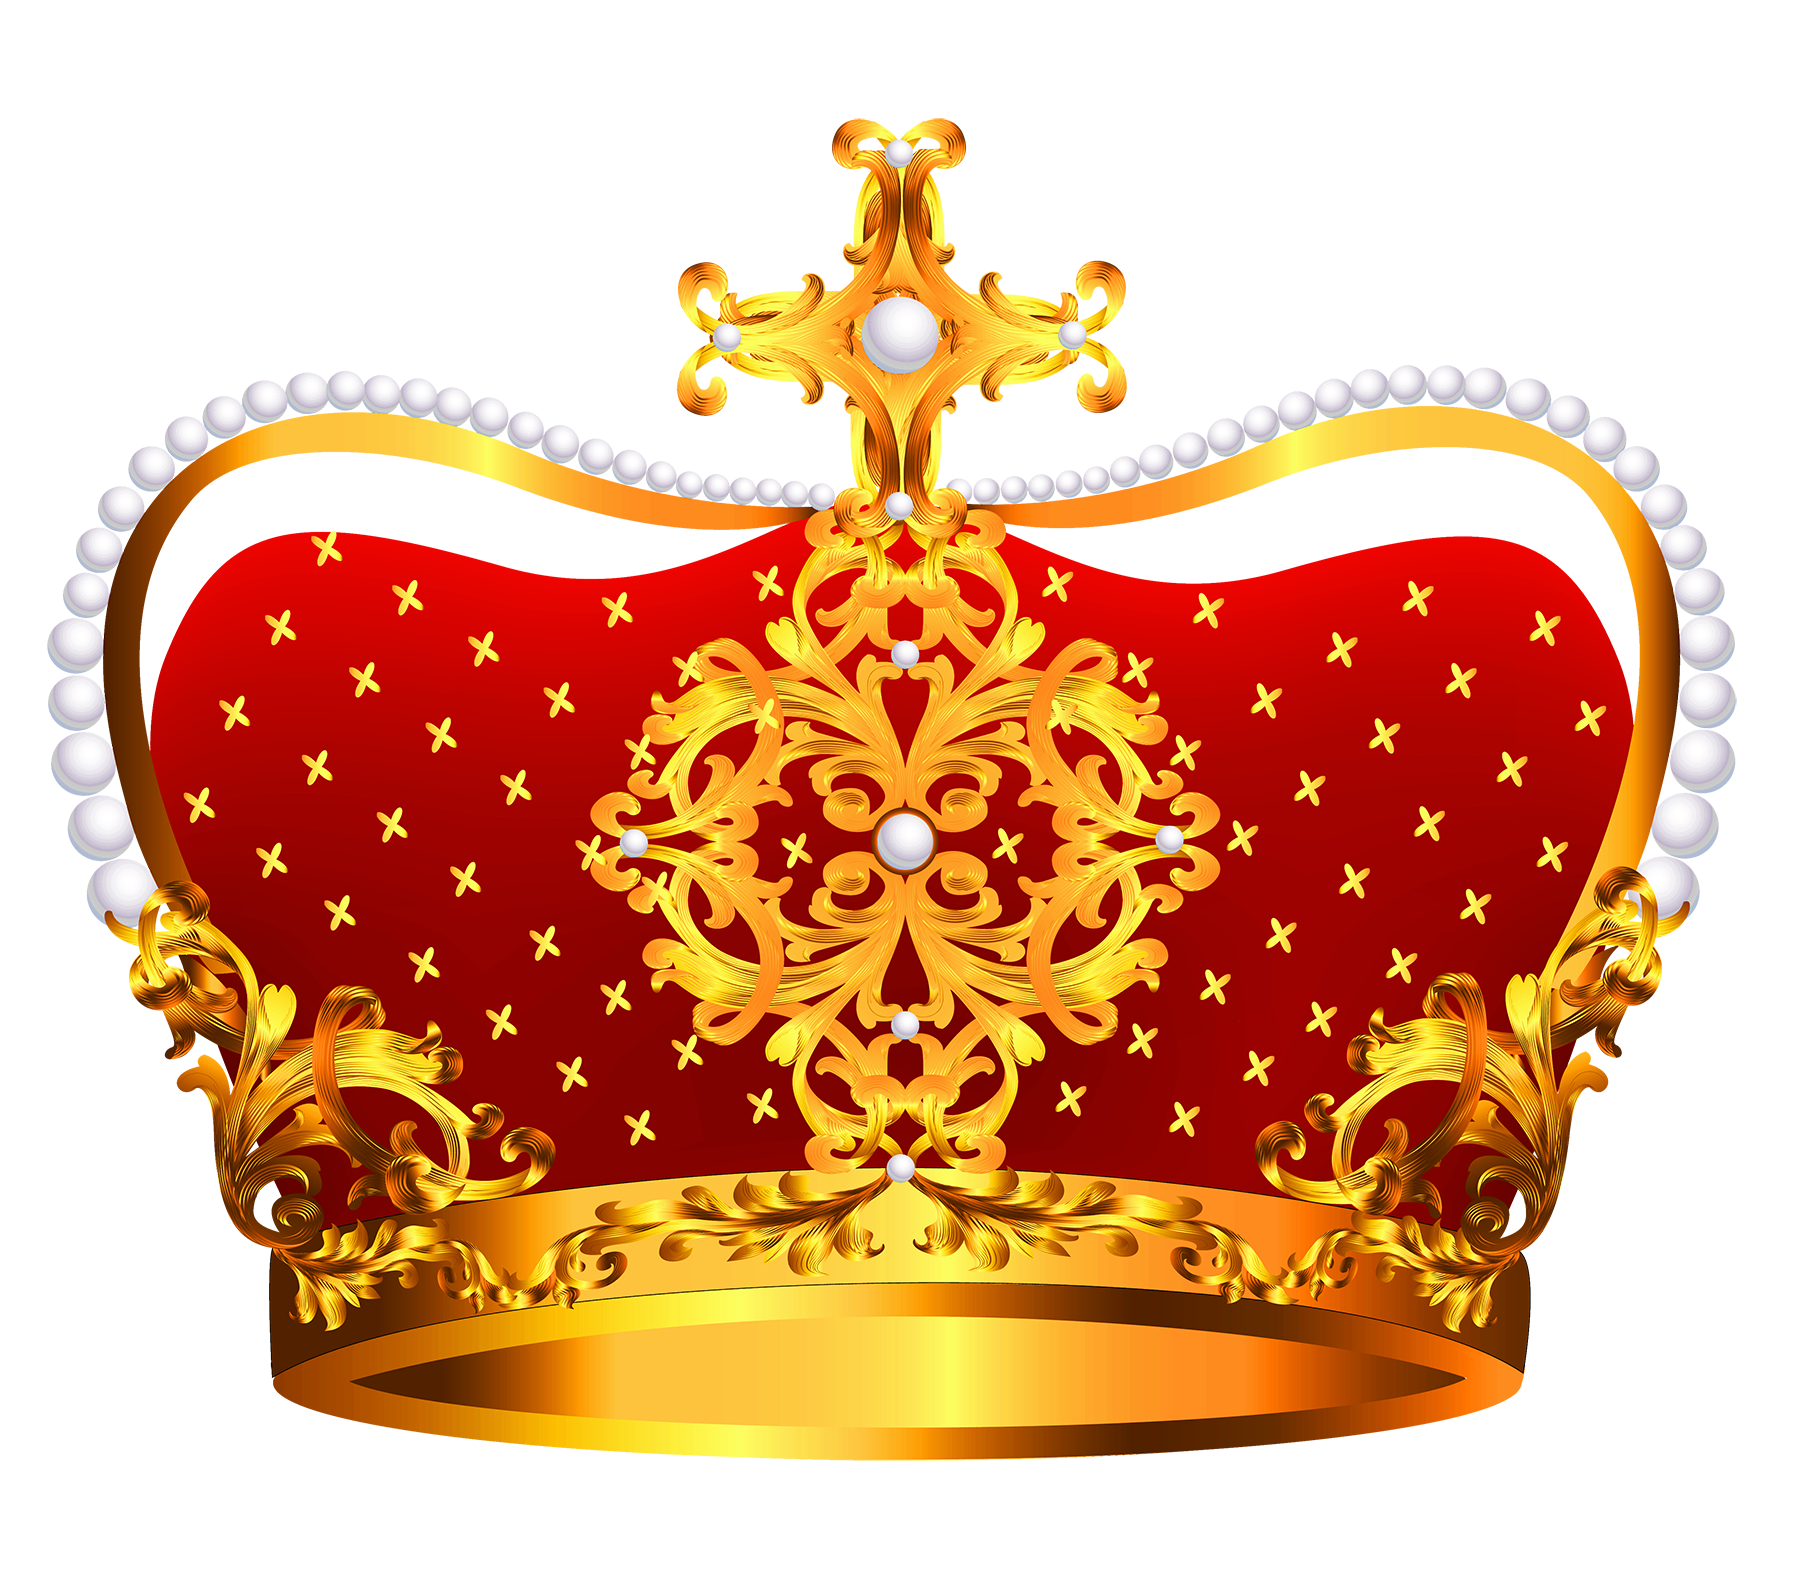 Crown with red jewels clipart vector royalty free Coroa-Dourada-09.png (1800×1575) | корона | Pinterest | Corona, Clip ... vector royalty free